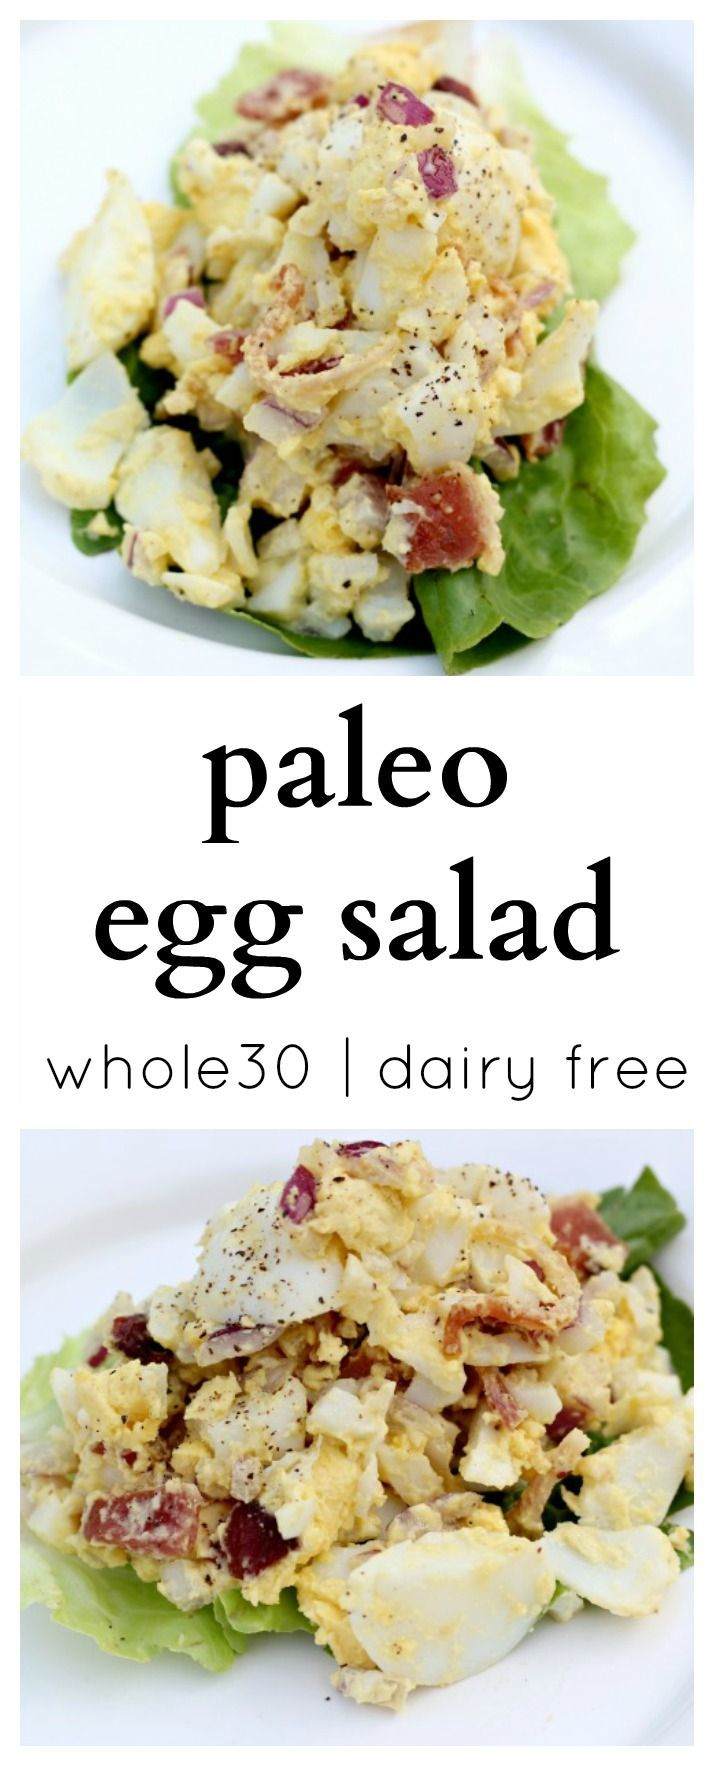 Perfect make ahead recipe for the busy Paleo eater! This recipe takes no time and the homemade mayo is so delicious and quick to make.